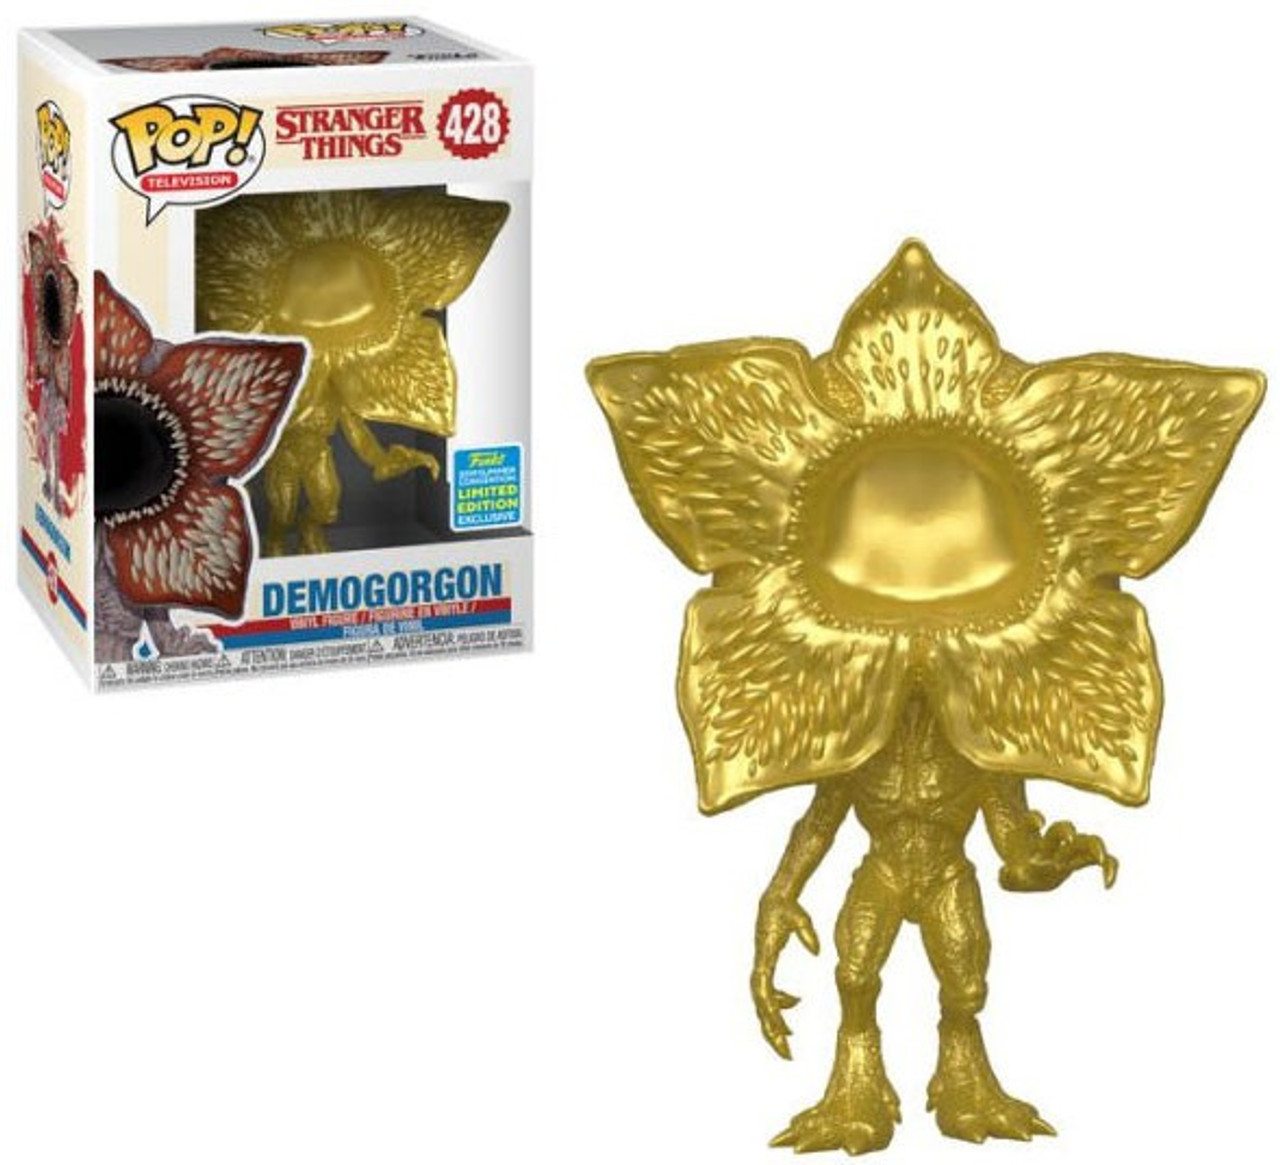 Demogorgon Roblox Funko Stranger Things Pop Tv Demogorgon Exclusive Vinyl Figure 428 Gold Mouth Closed Toywiz